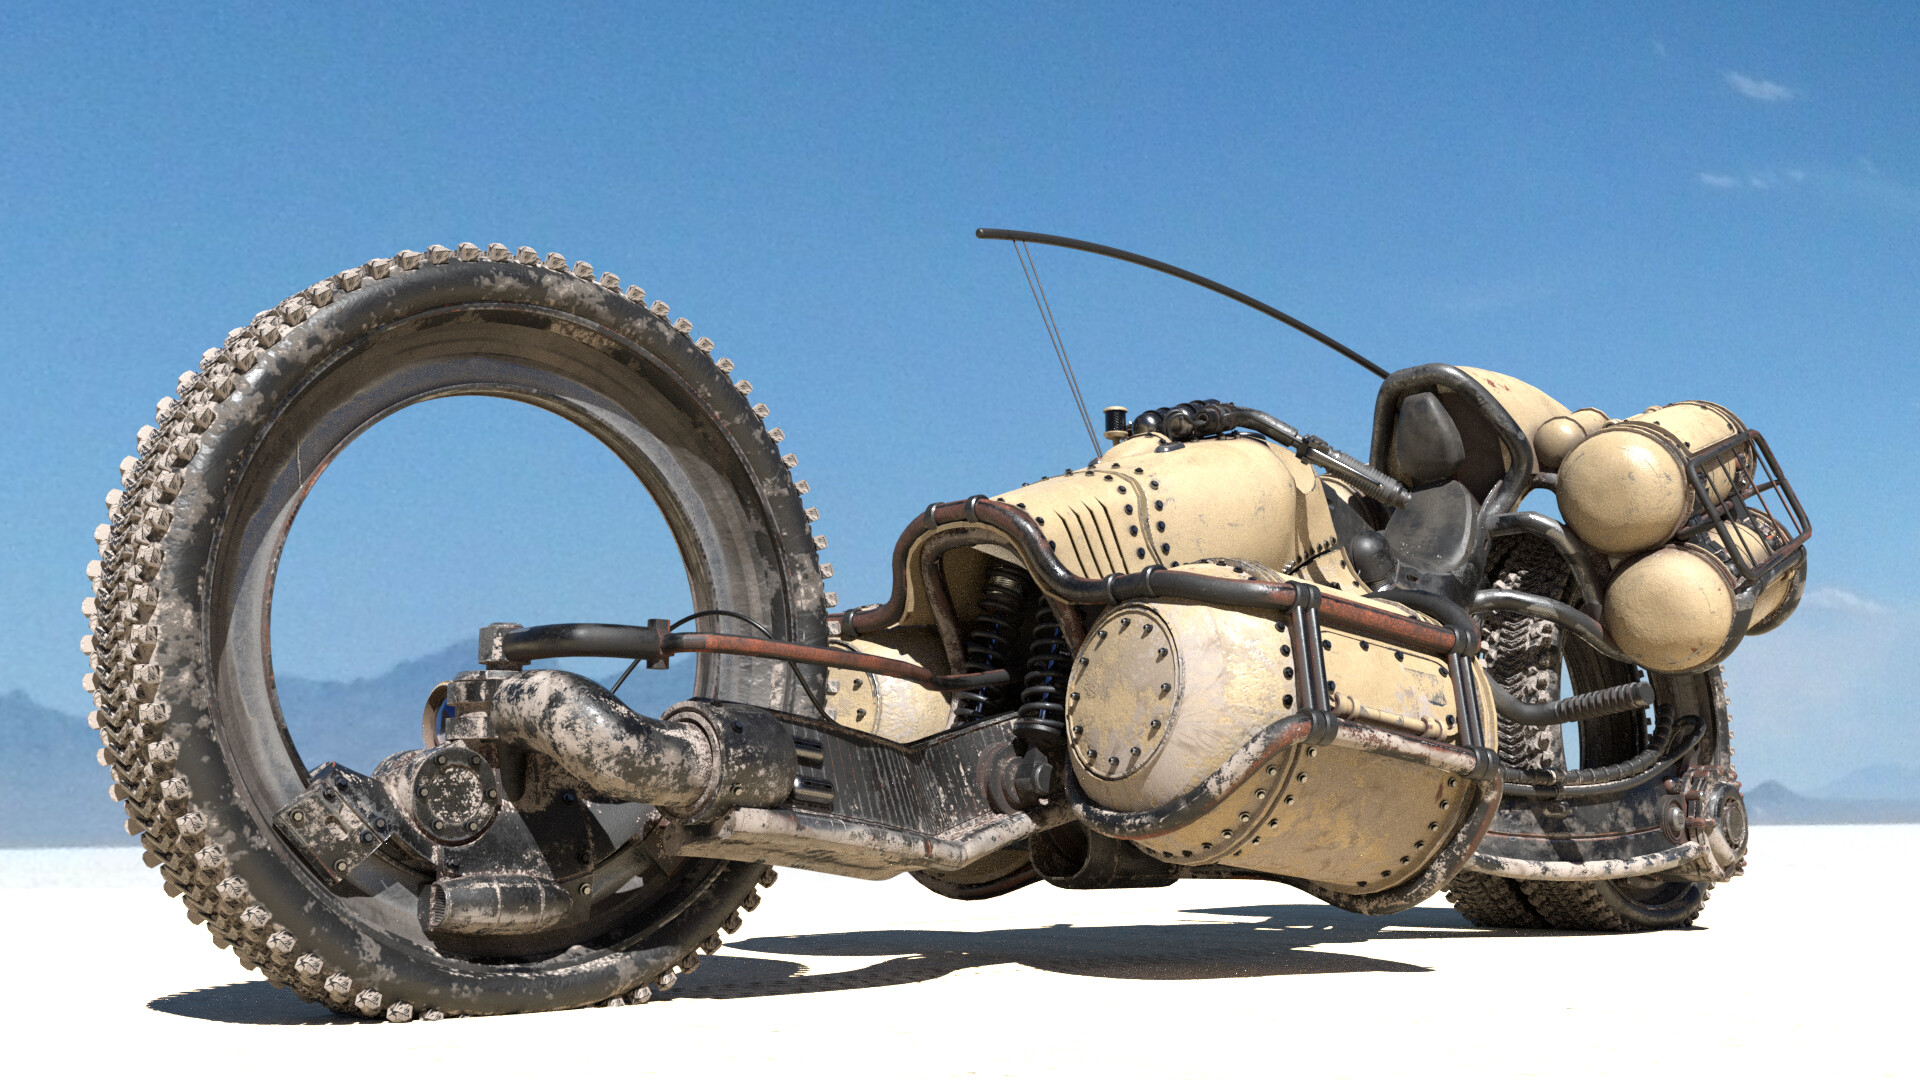 The Cool Sci-Fi Vehicle Designs of Till Freitag